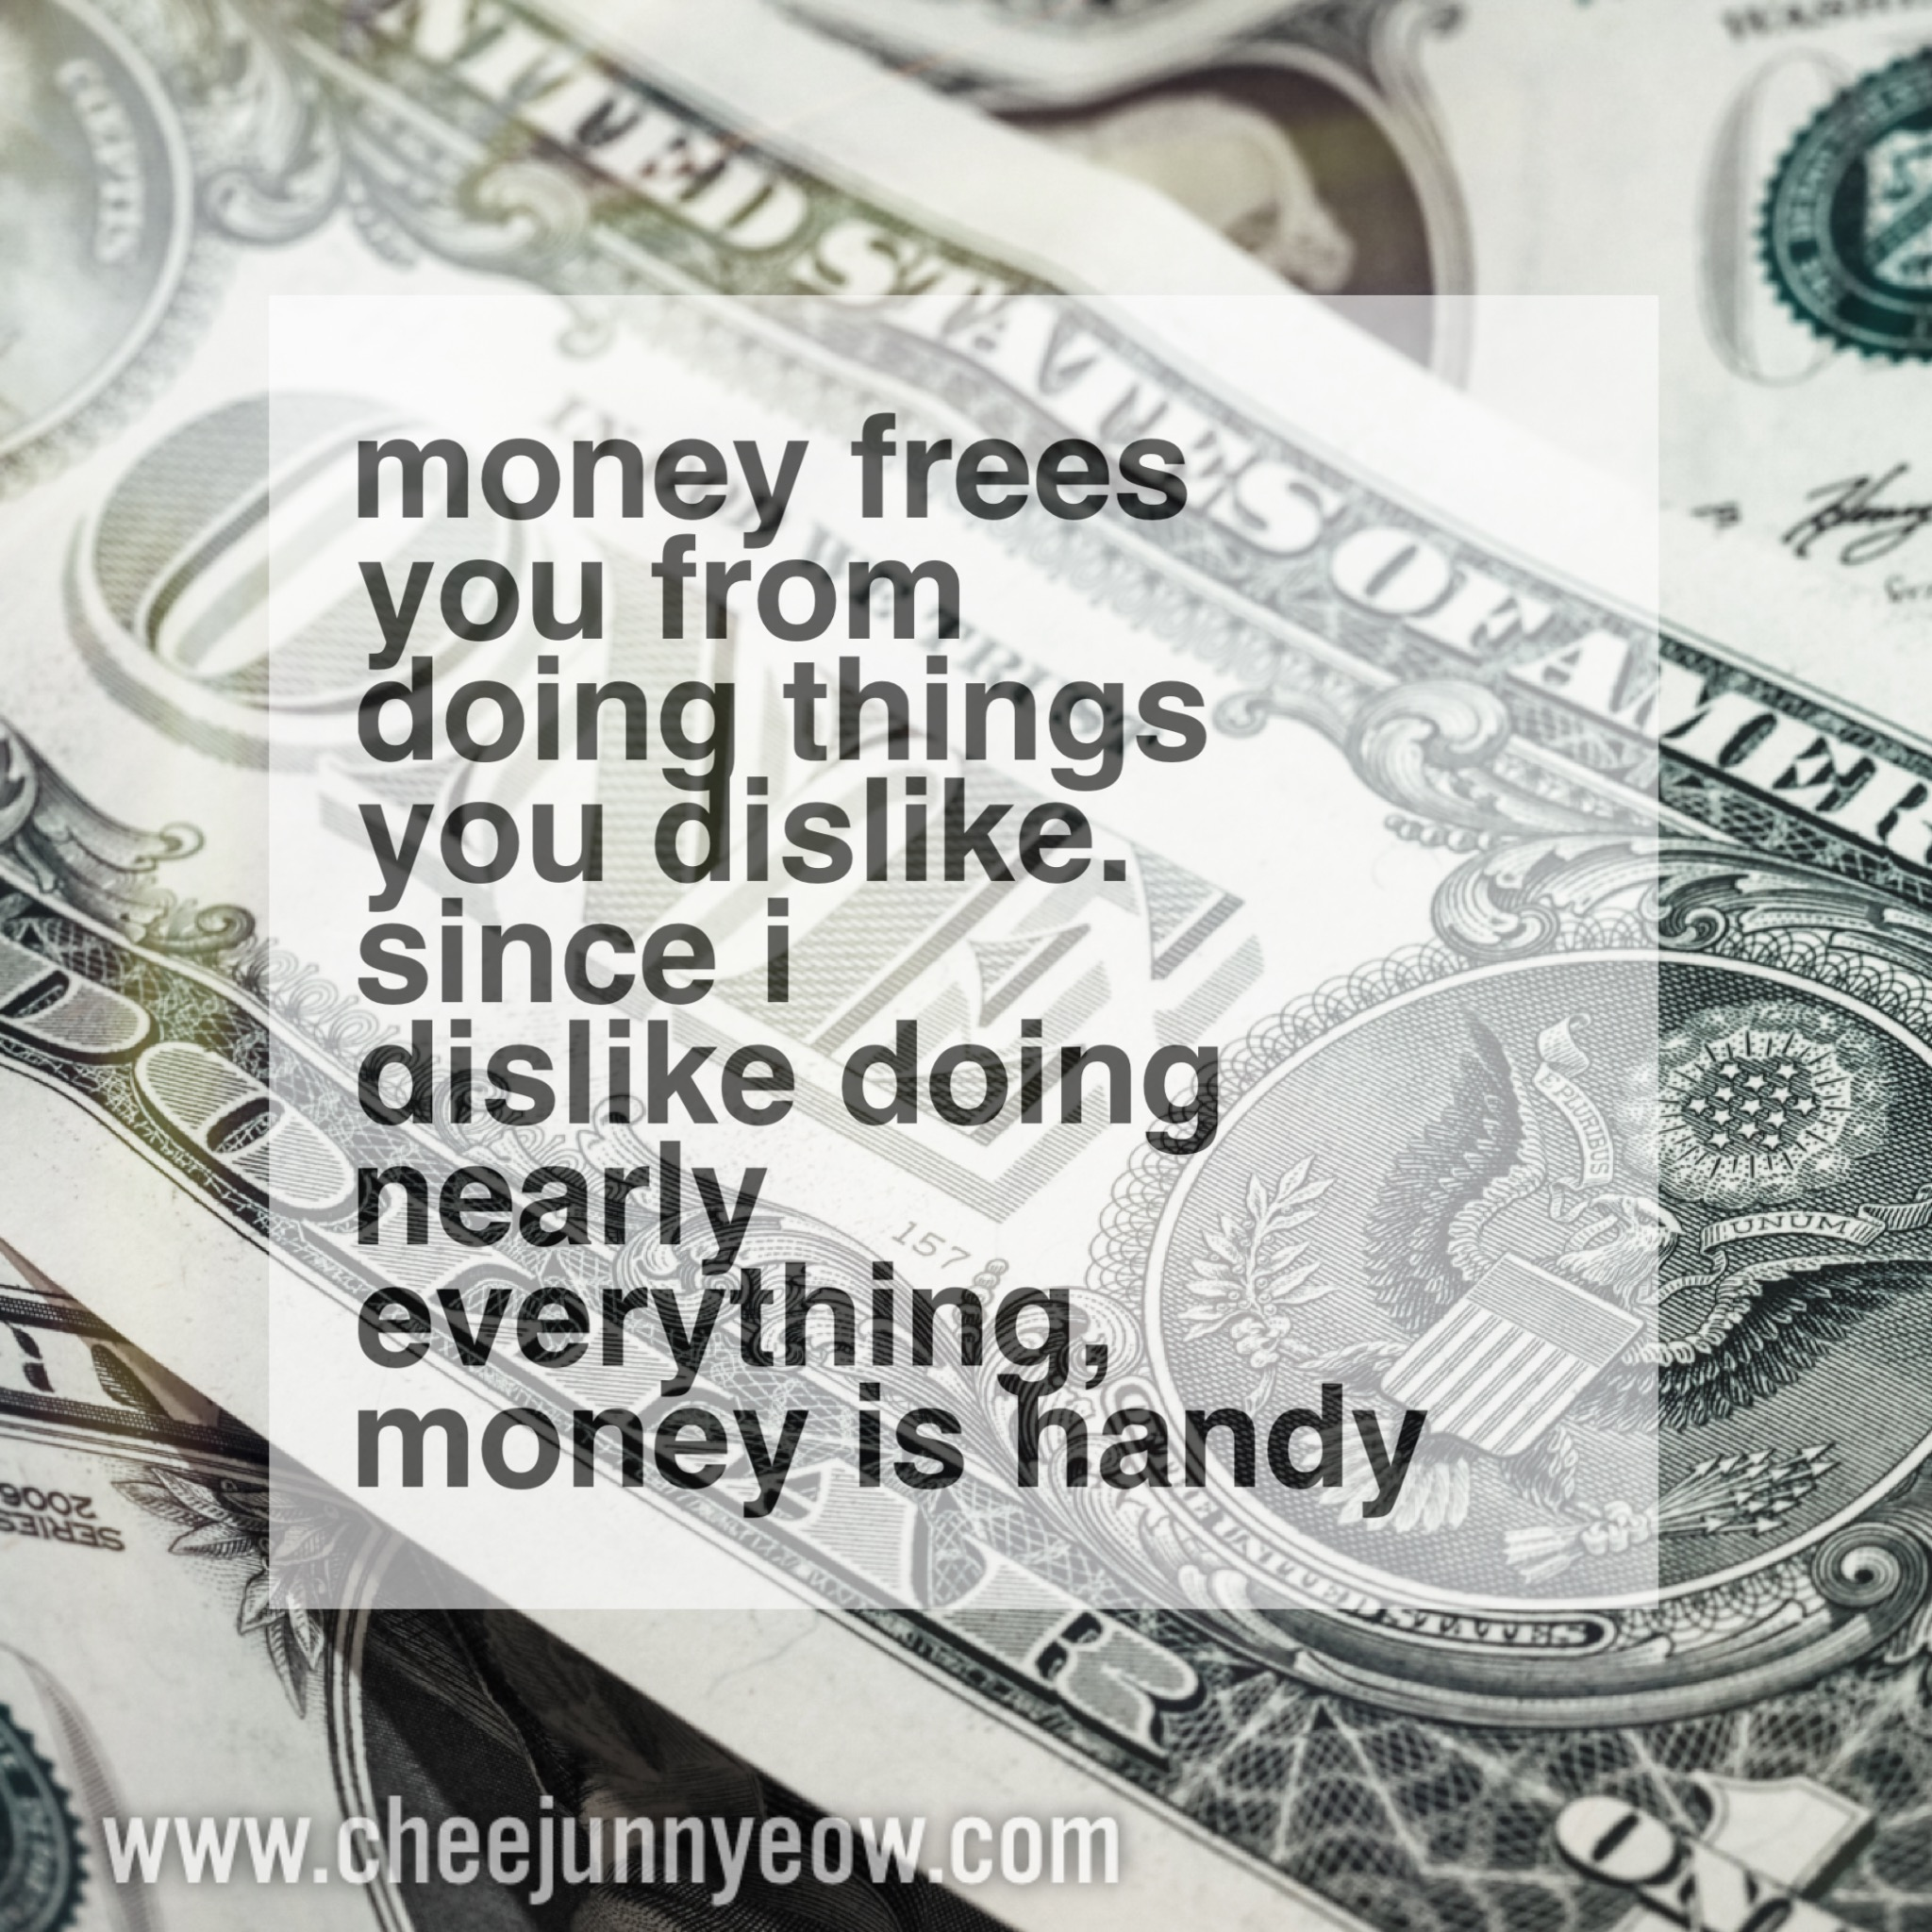 money can free you from doing things you dislike, but never let it make you a slave